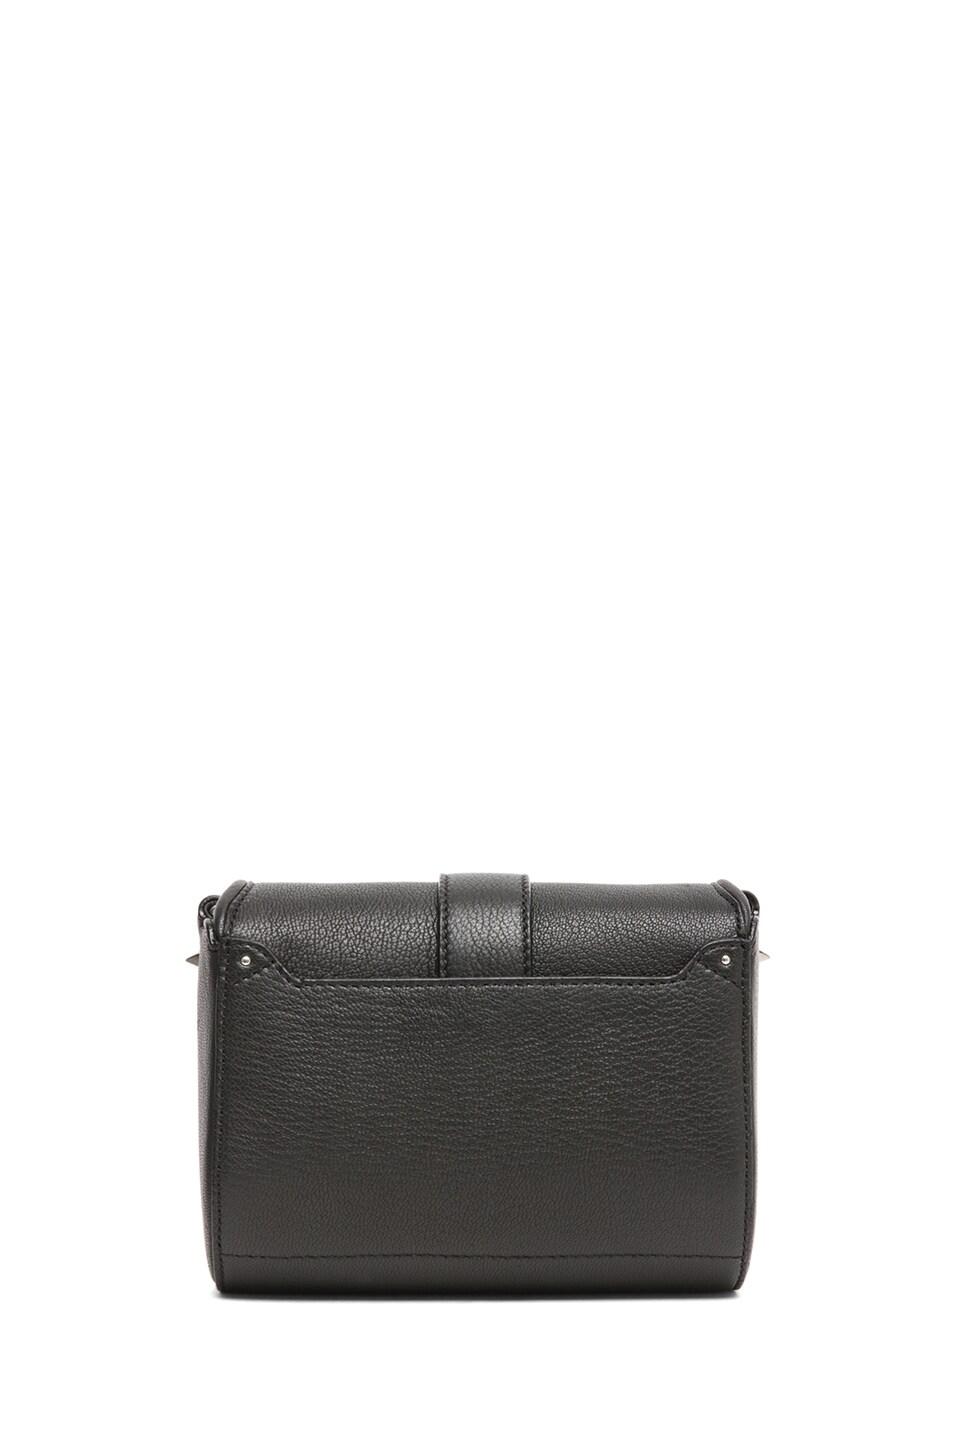 Image 2 of GIVENCHY Obsedia in Black